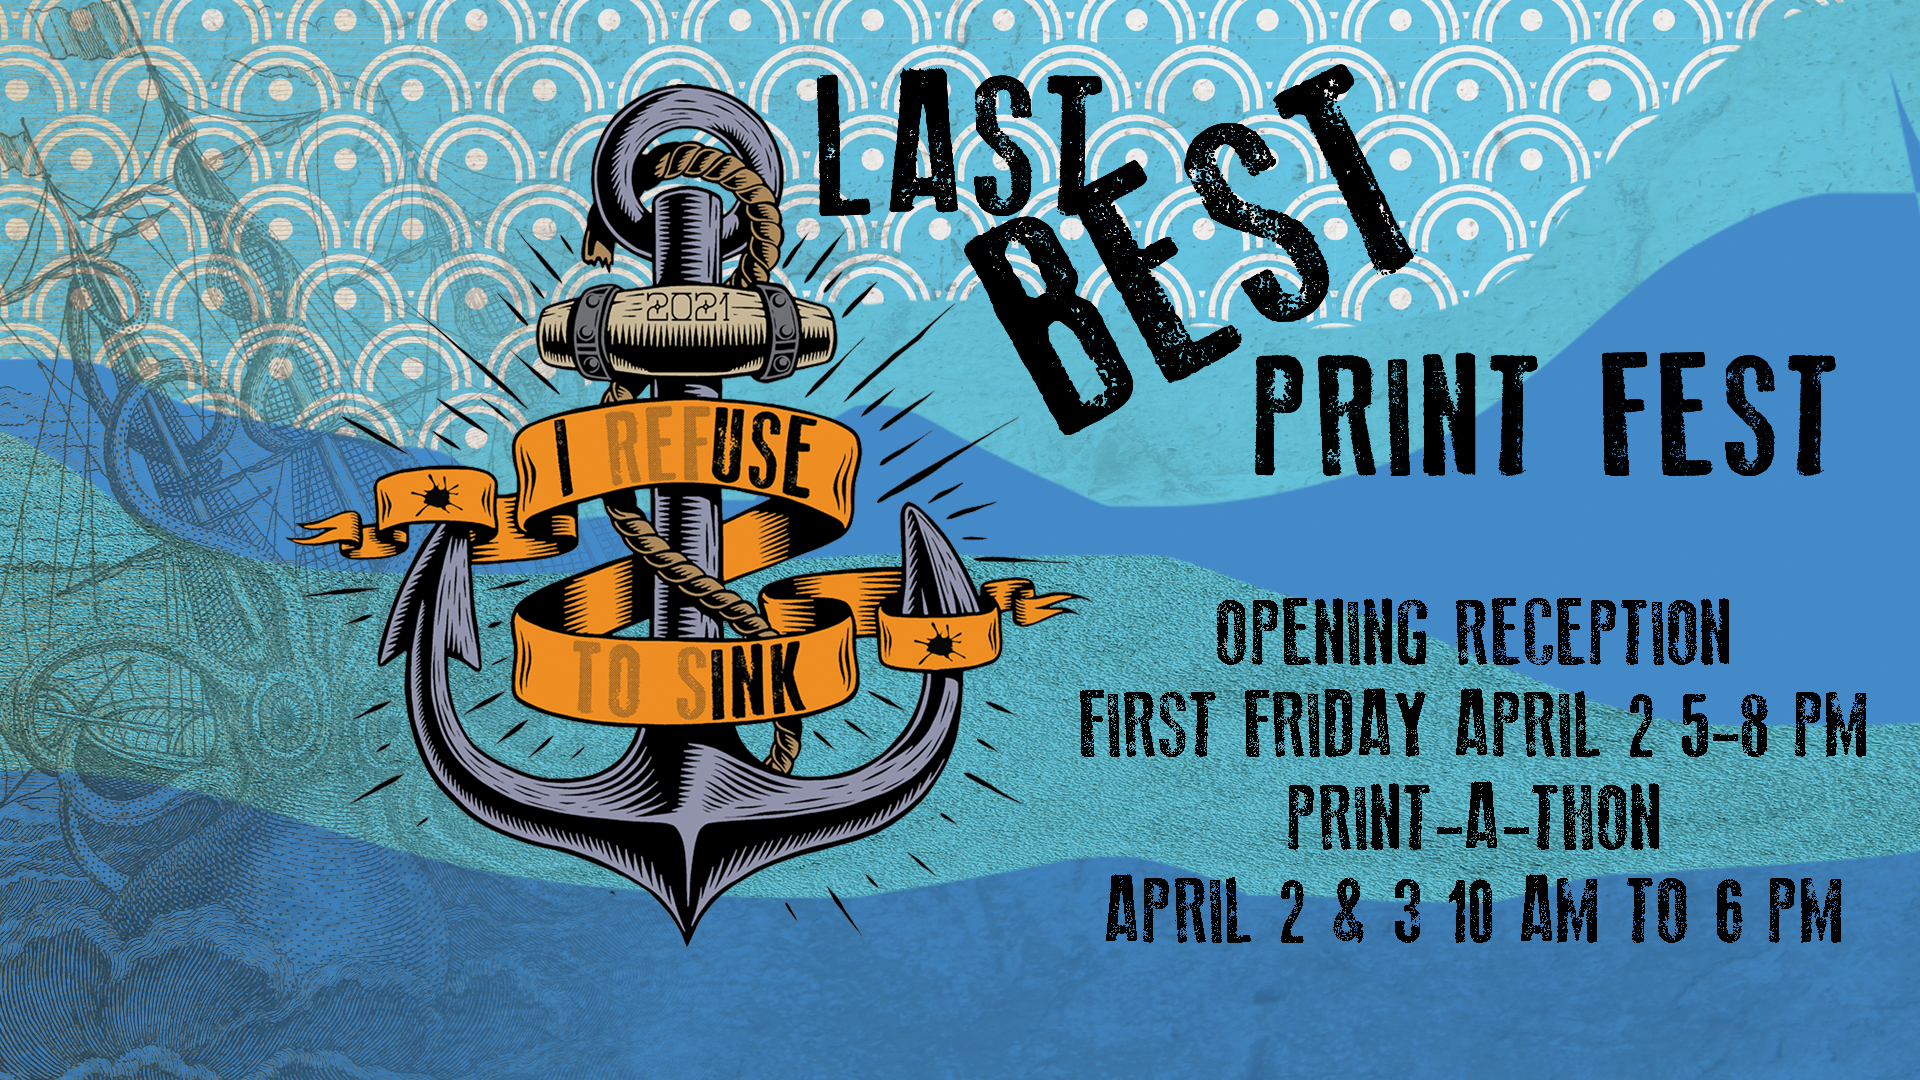 Last Best Print Fest in the Main Gallery